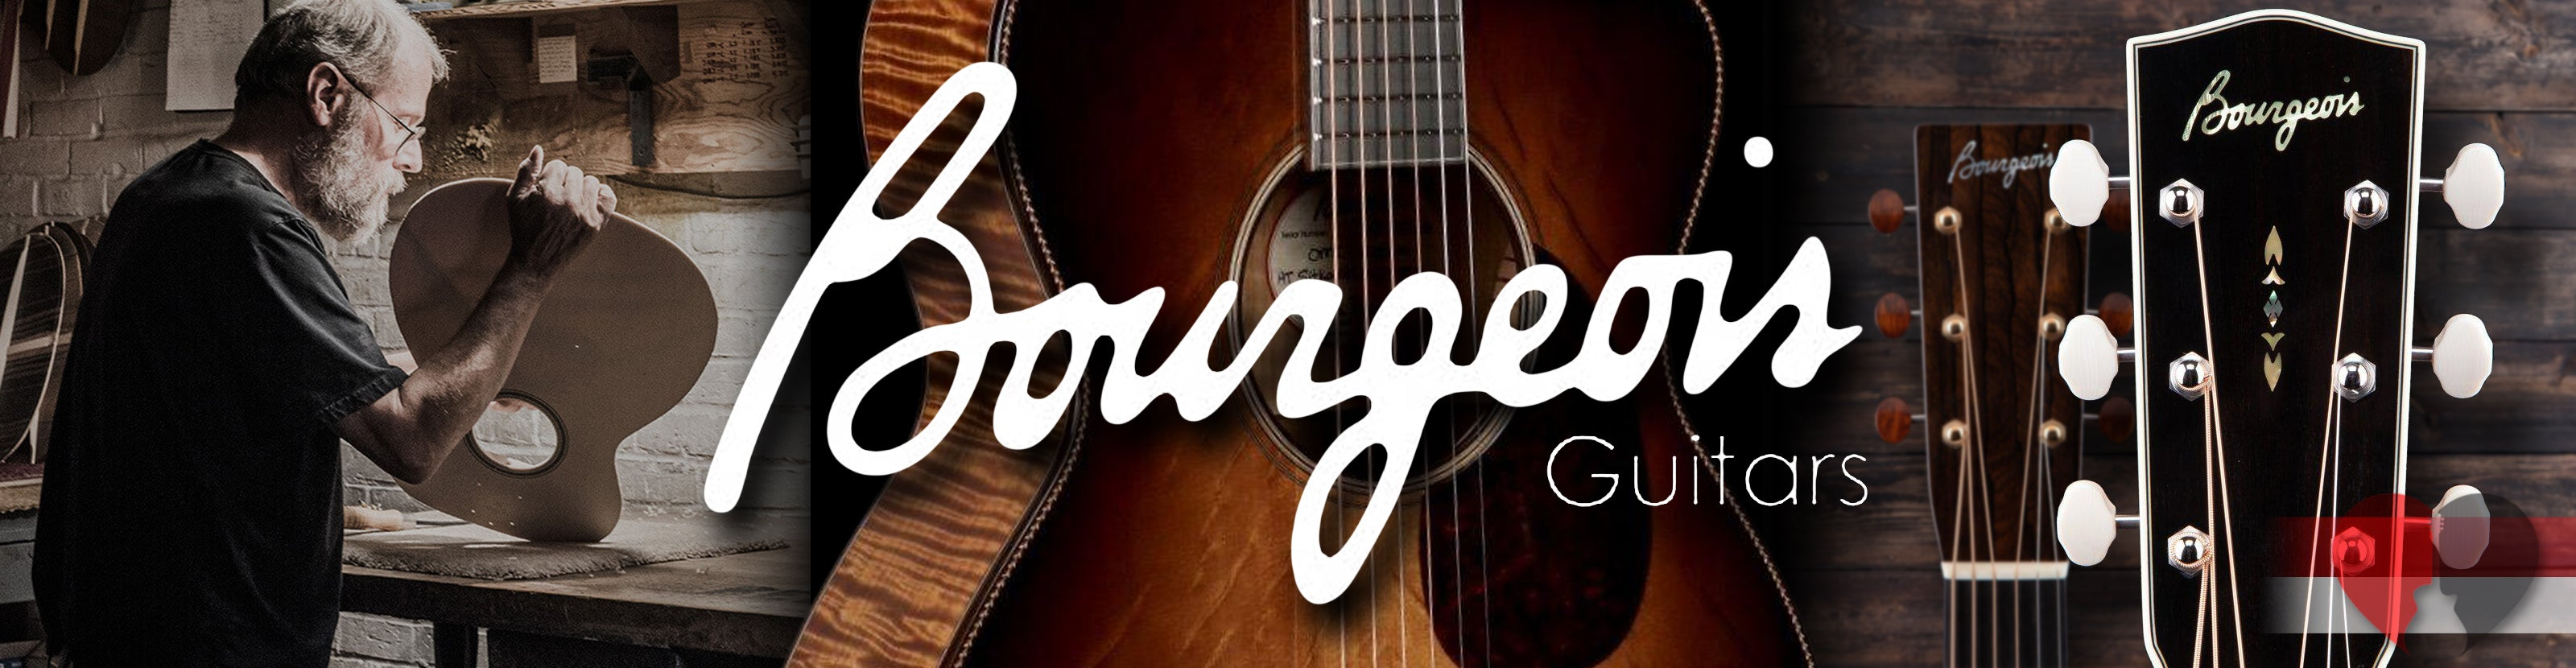 Bourgeois Guitars